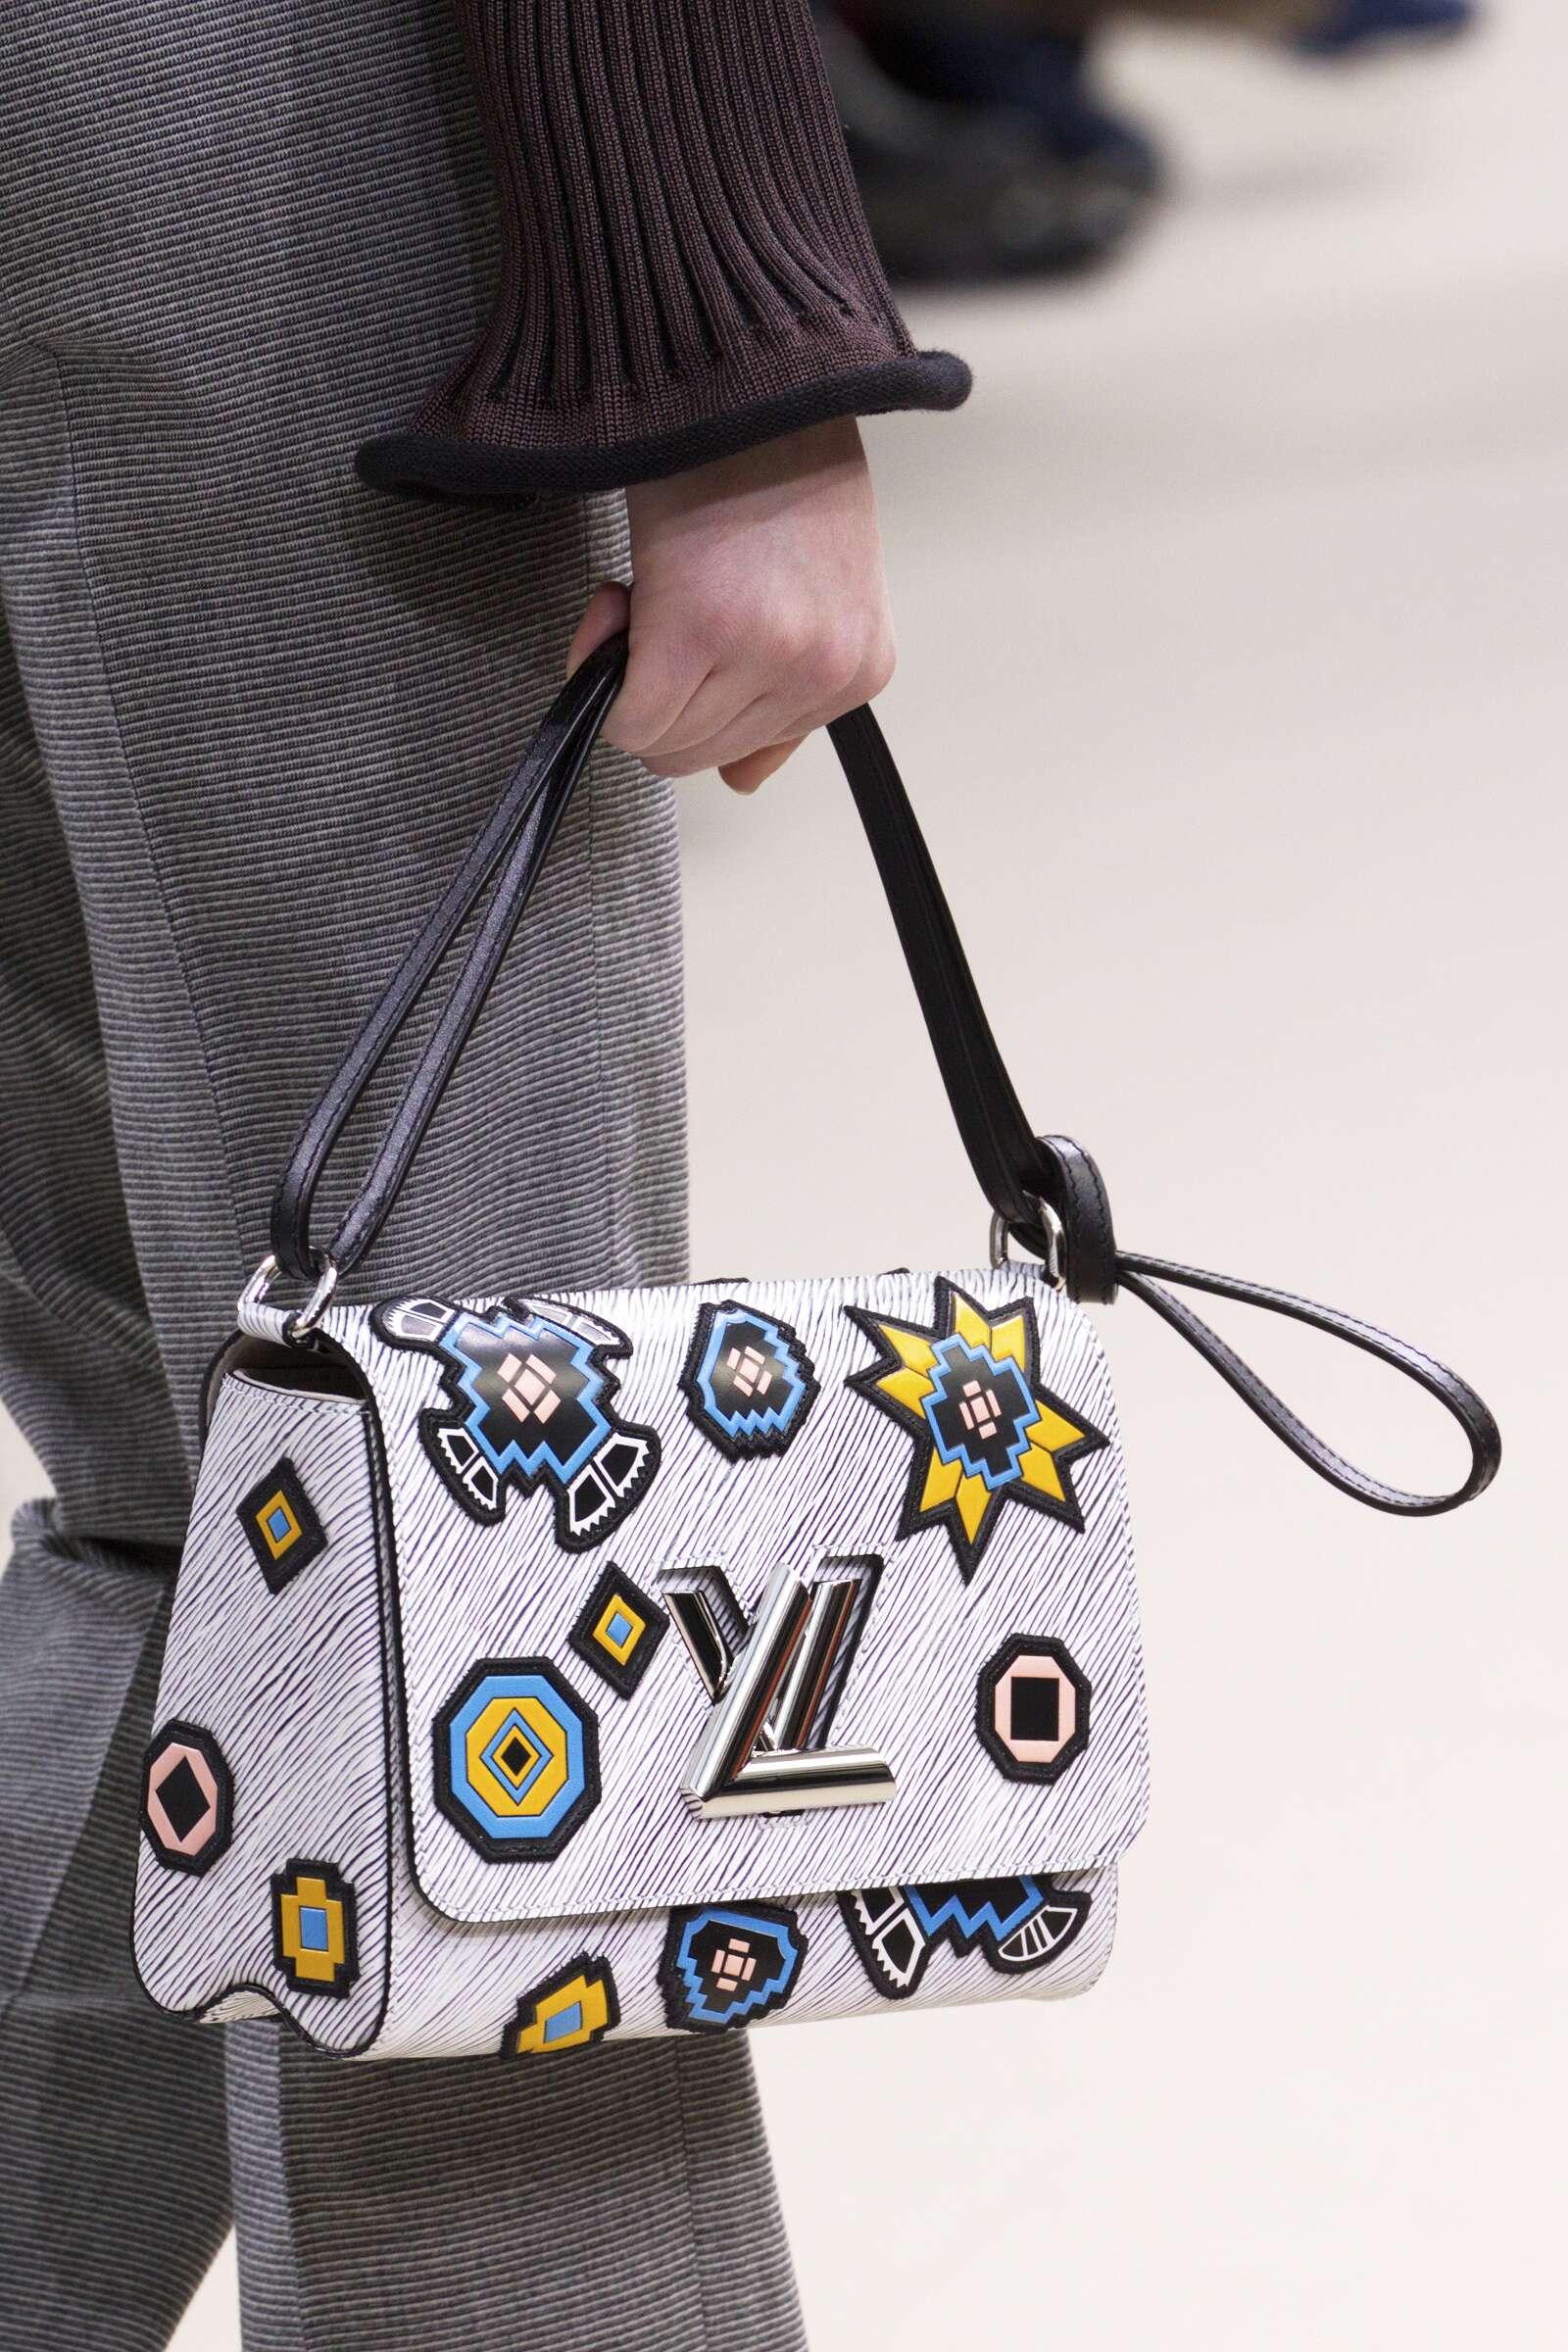 Louis Vuitton Bag Details Collection Woman Paris Fashion Week